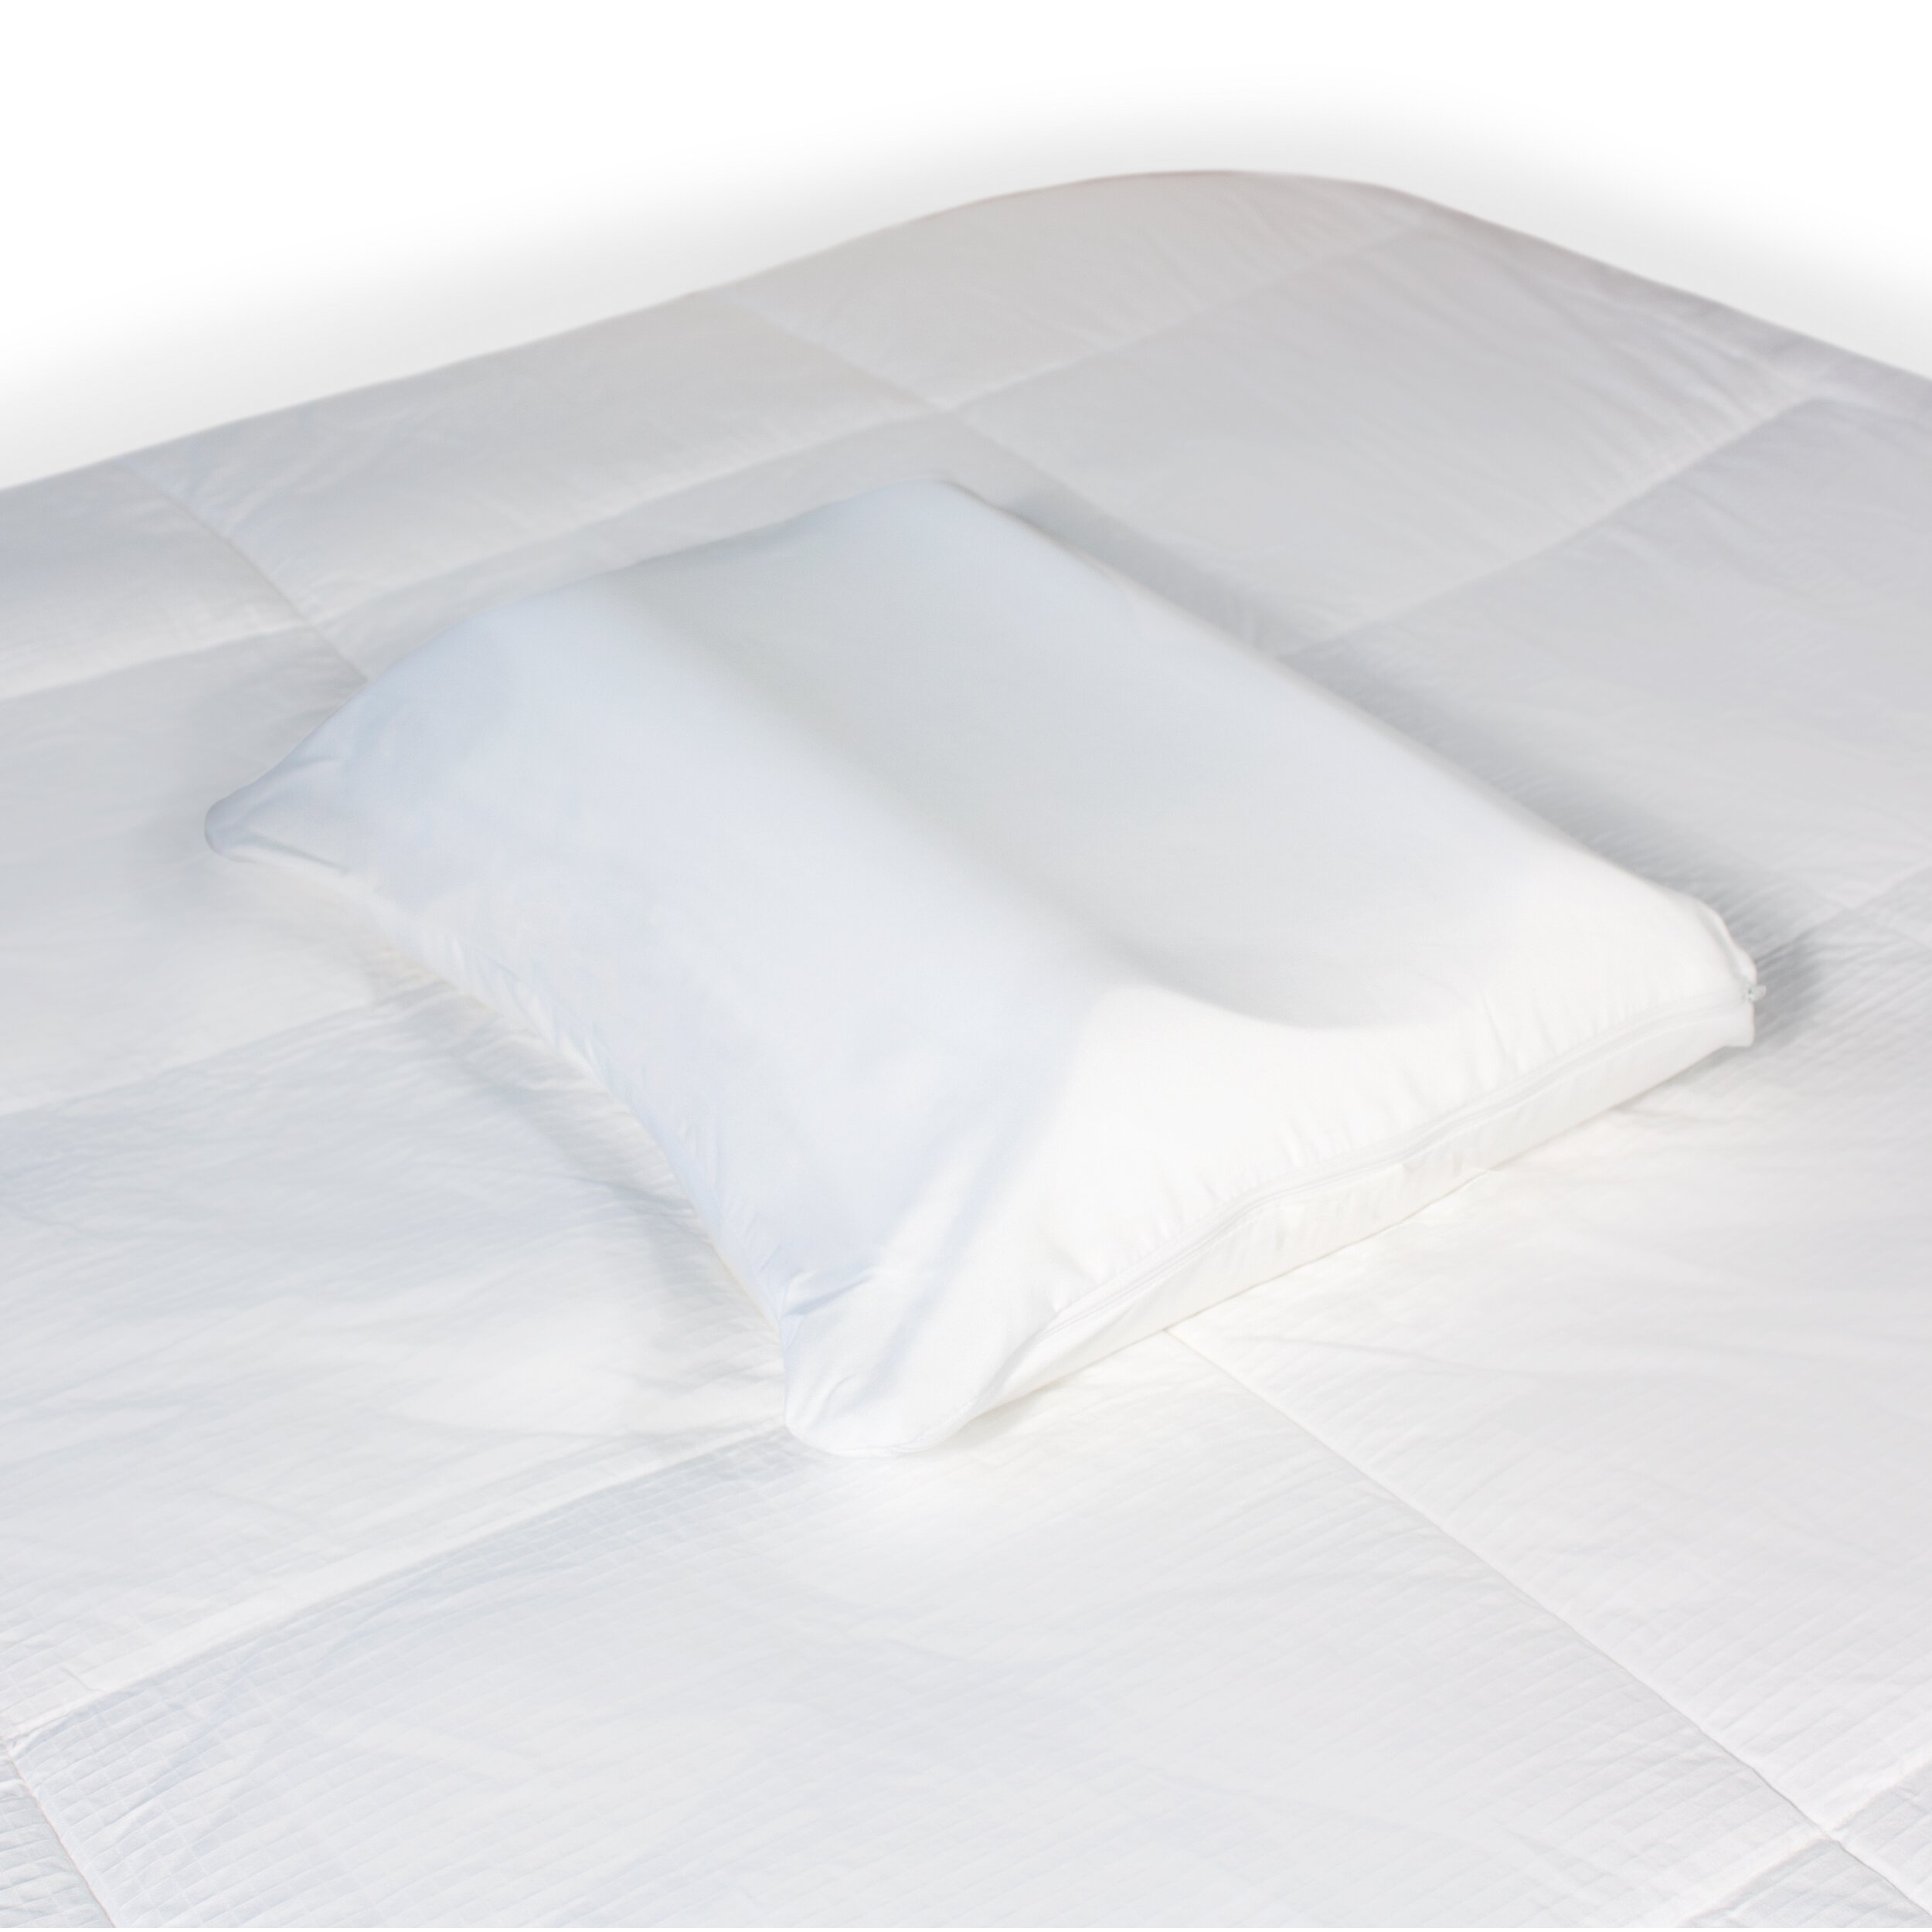 Science of sleep polar foam snore no more pillow wayfair The more pillows you sleep with